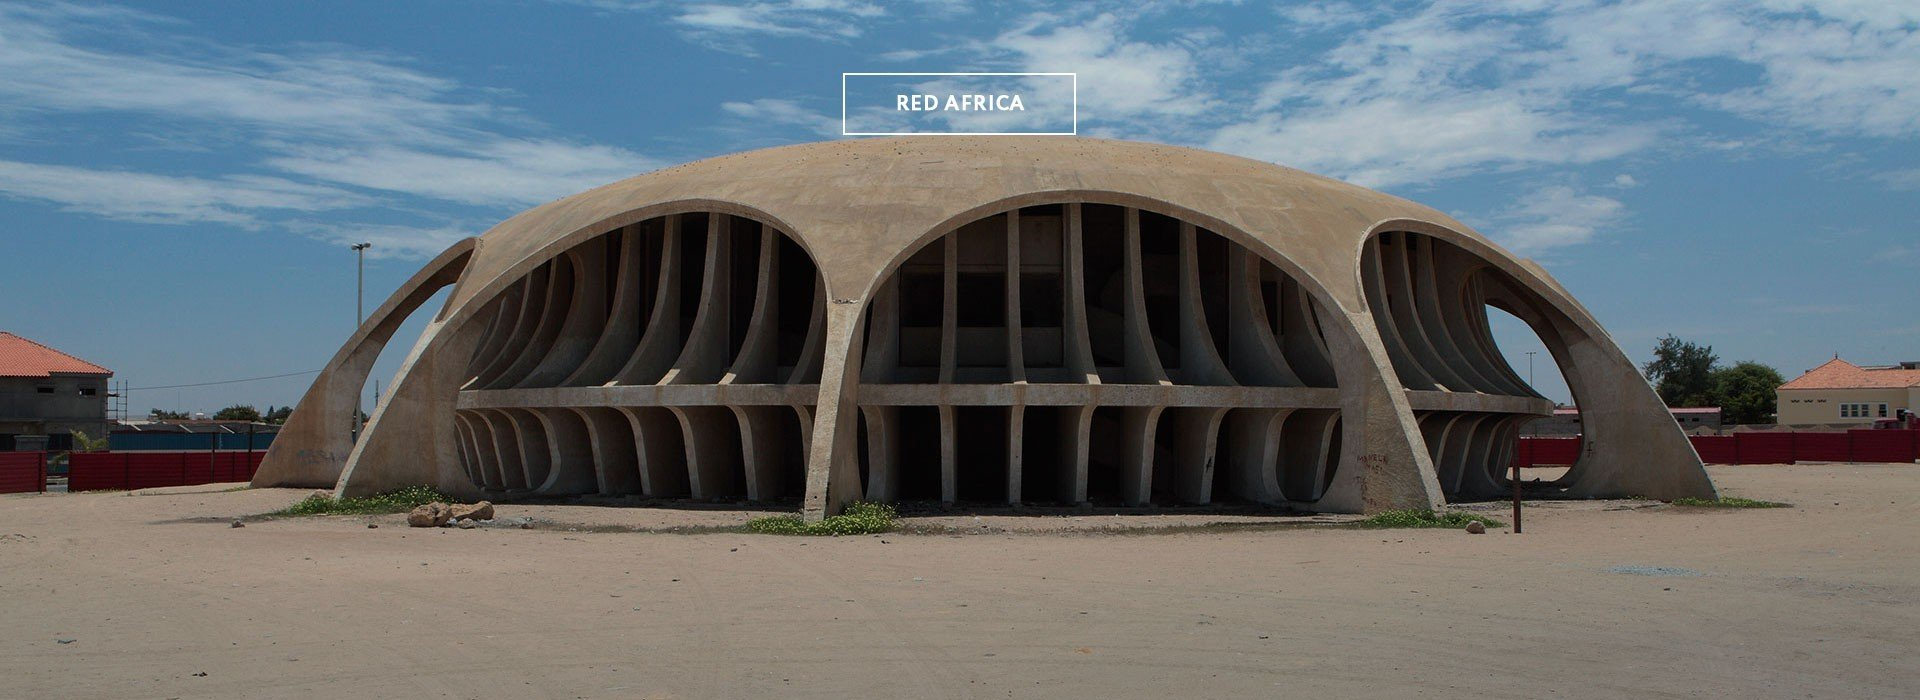 Screen dreams: Angola's modernist cinemas and the fading of a utopian vision for Africa